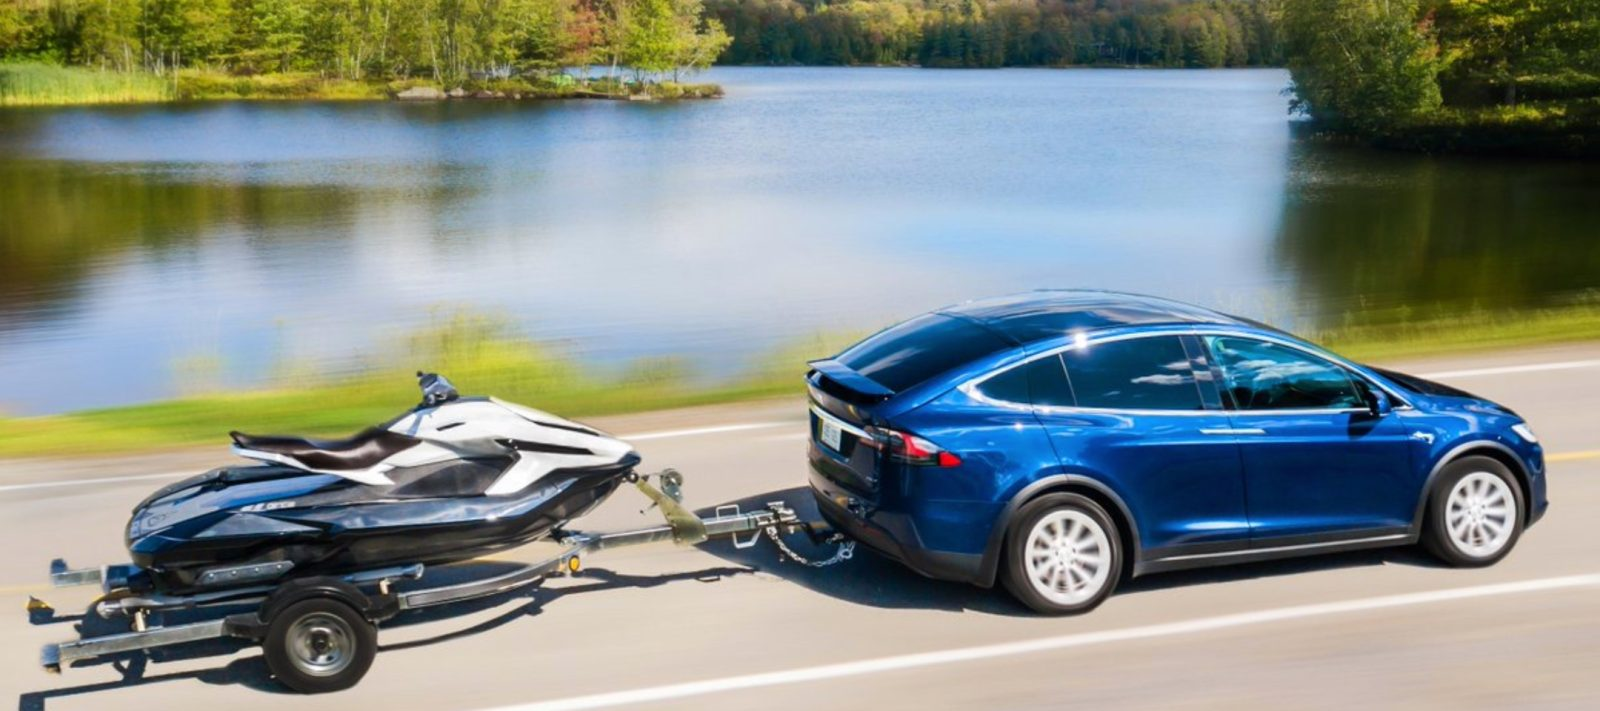 Tesla should allow owners to charge recreational EVs towed by its vehicles at Superchargers